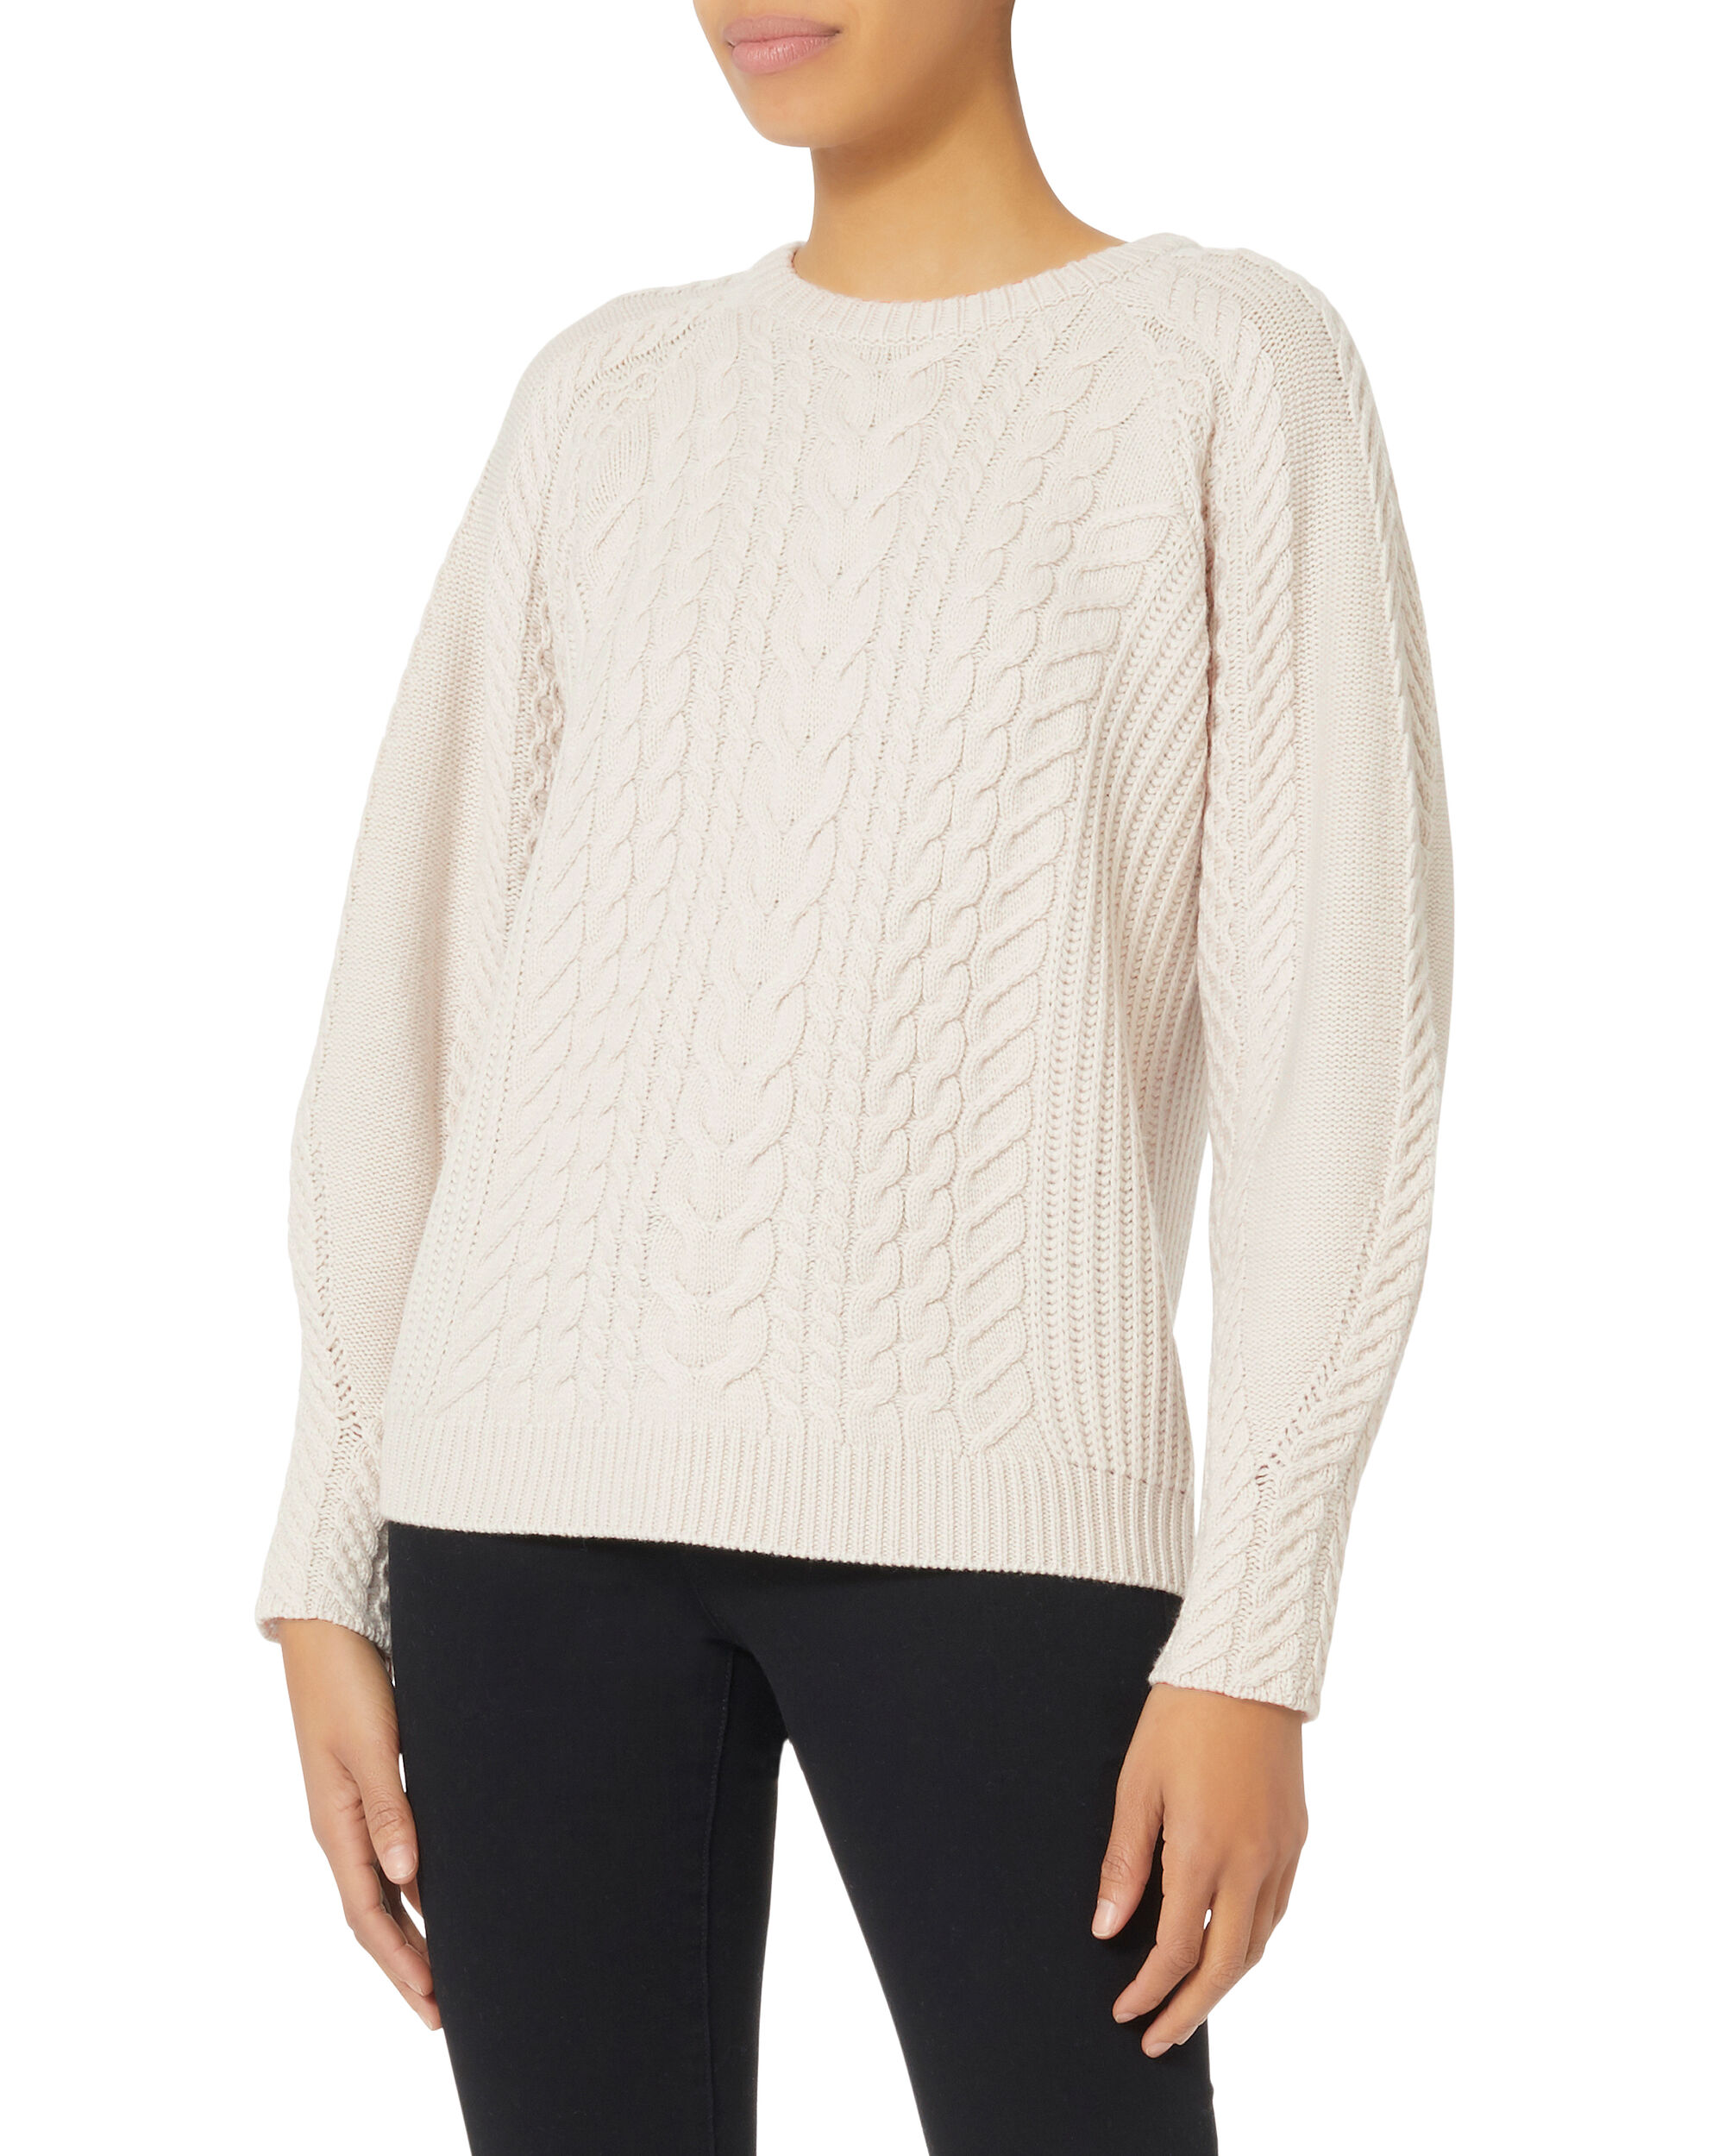 Brinley Blouson Sleeve Cabled Sweater, GREY-LT, hi-res